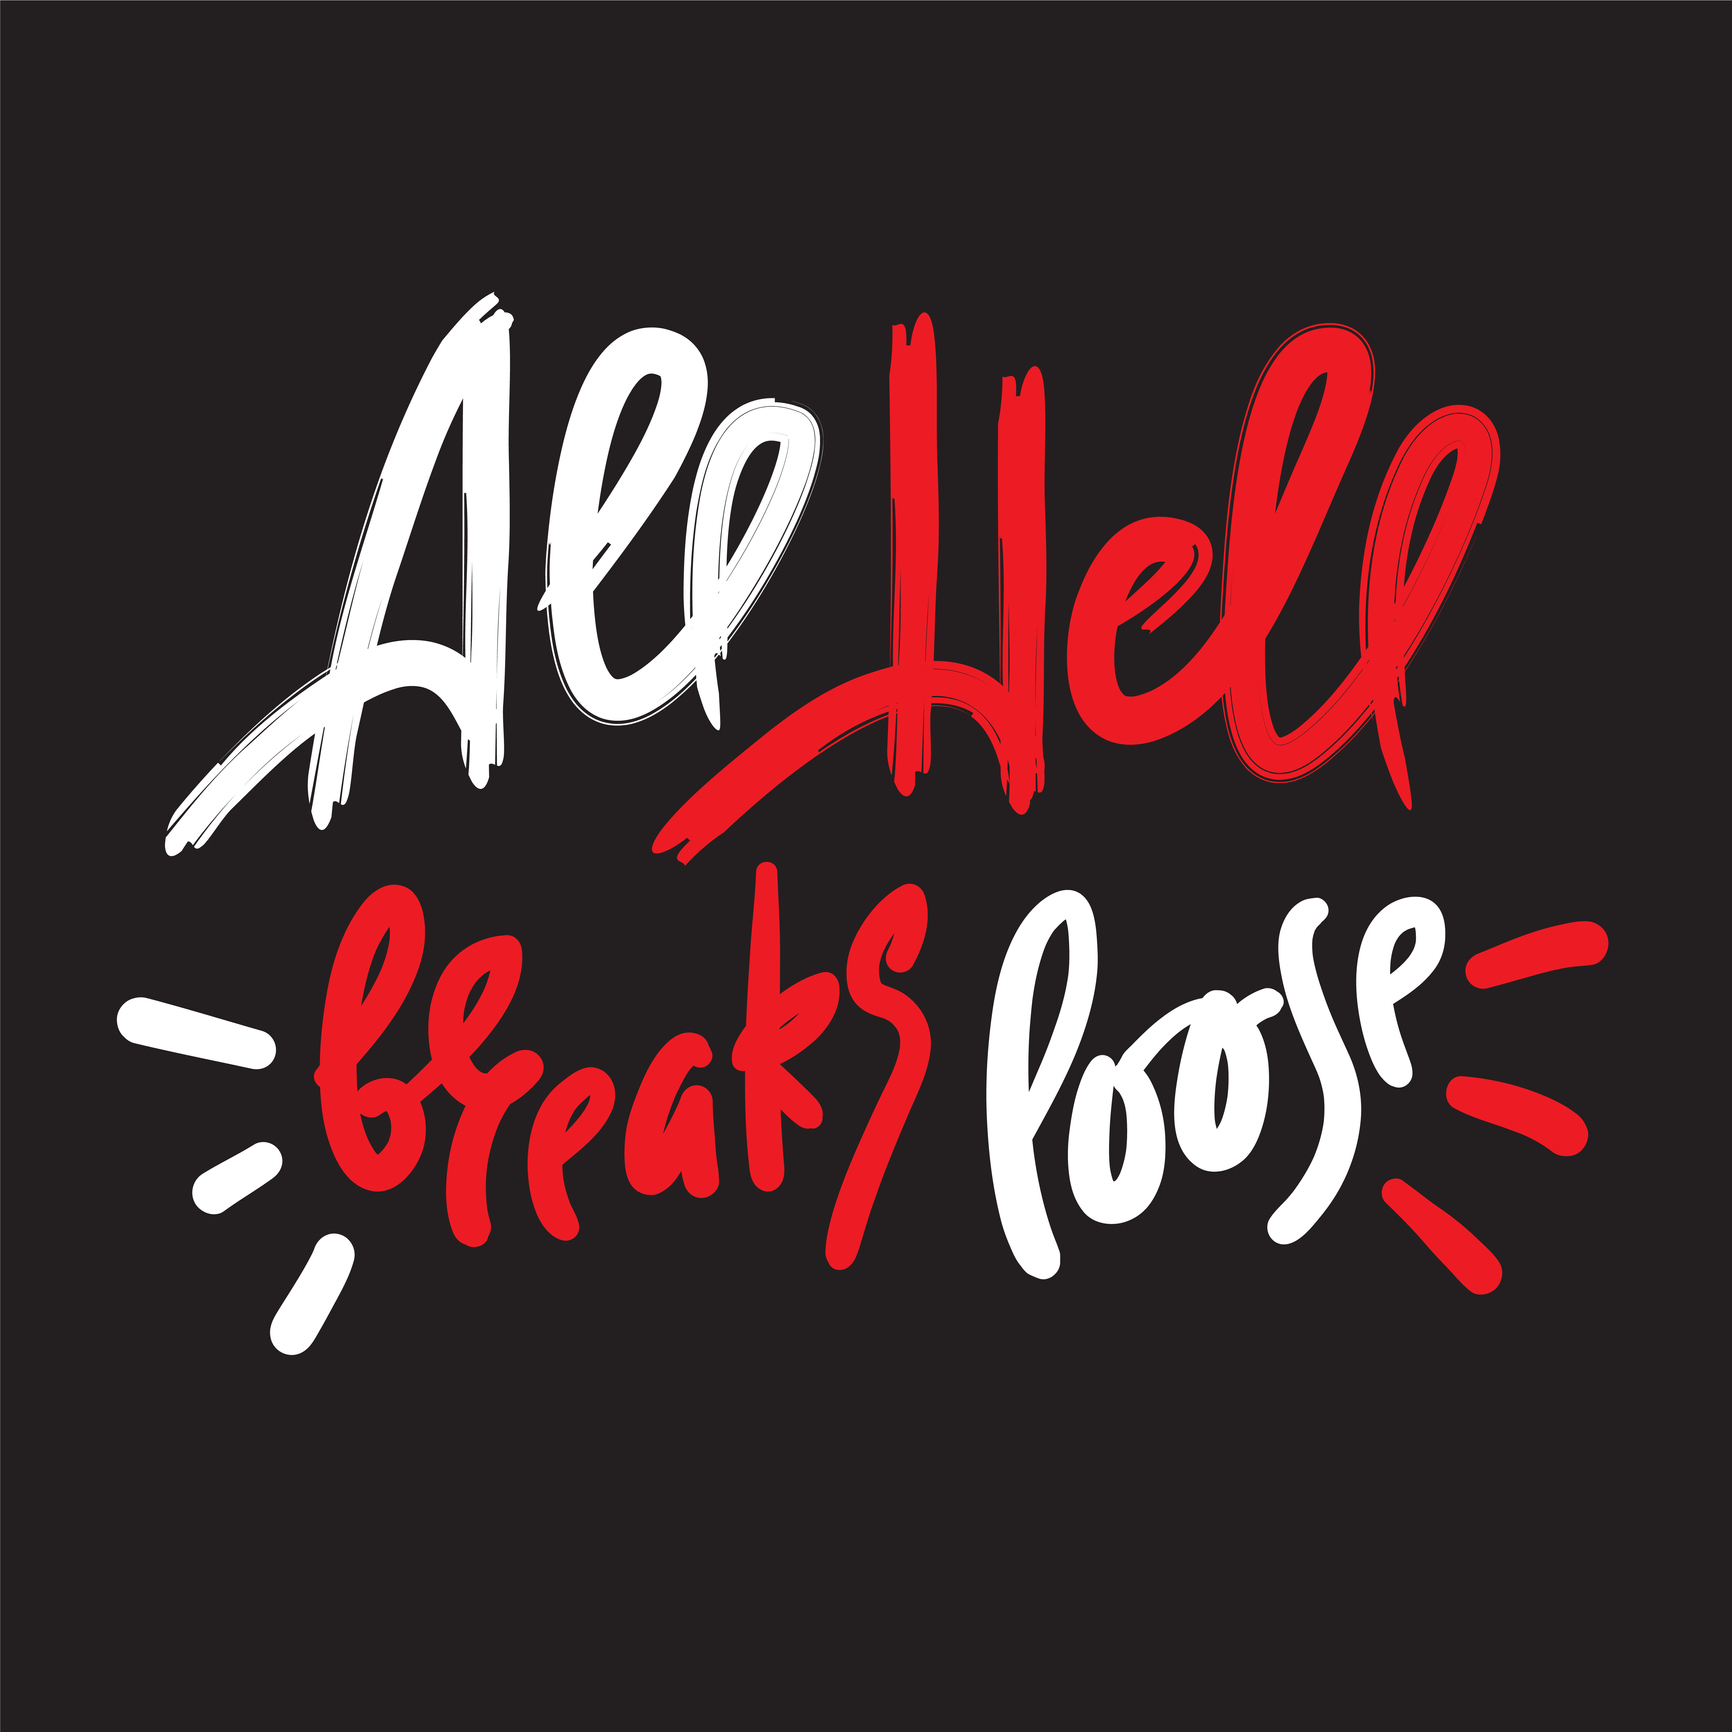 All hell breaks loose - inspire motivational quote. Hand drawn lettering. Youth slang, idiom. Print for inspirational poster, t-shirt, bag, cups, card, flyer, sticker, badge. Cute funny vector writing